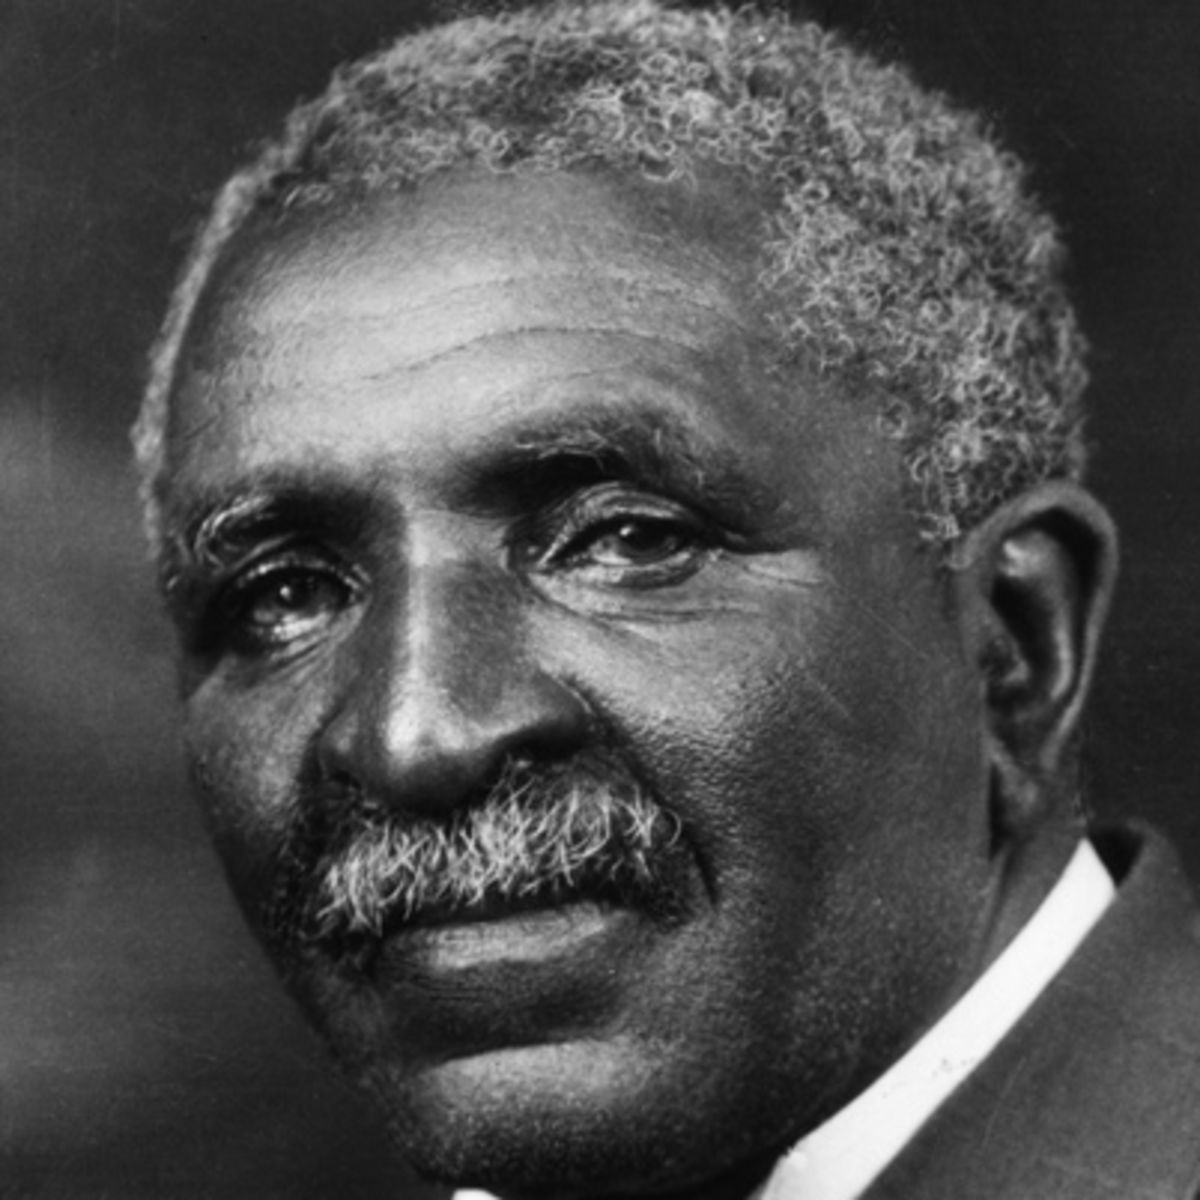 a biography of george washington carver an african american slave 1864 – 1943 george washington carver was an agricultural scientist and educator of international reputation, whose work had a critical impact on the agrarian economy of the post-civil war southern us.